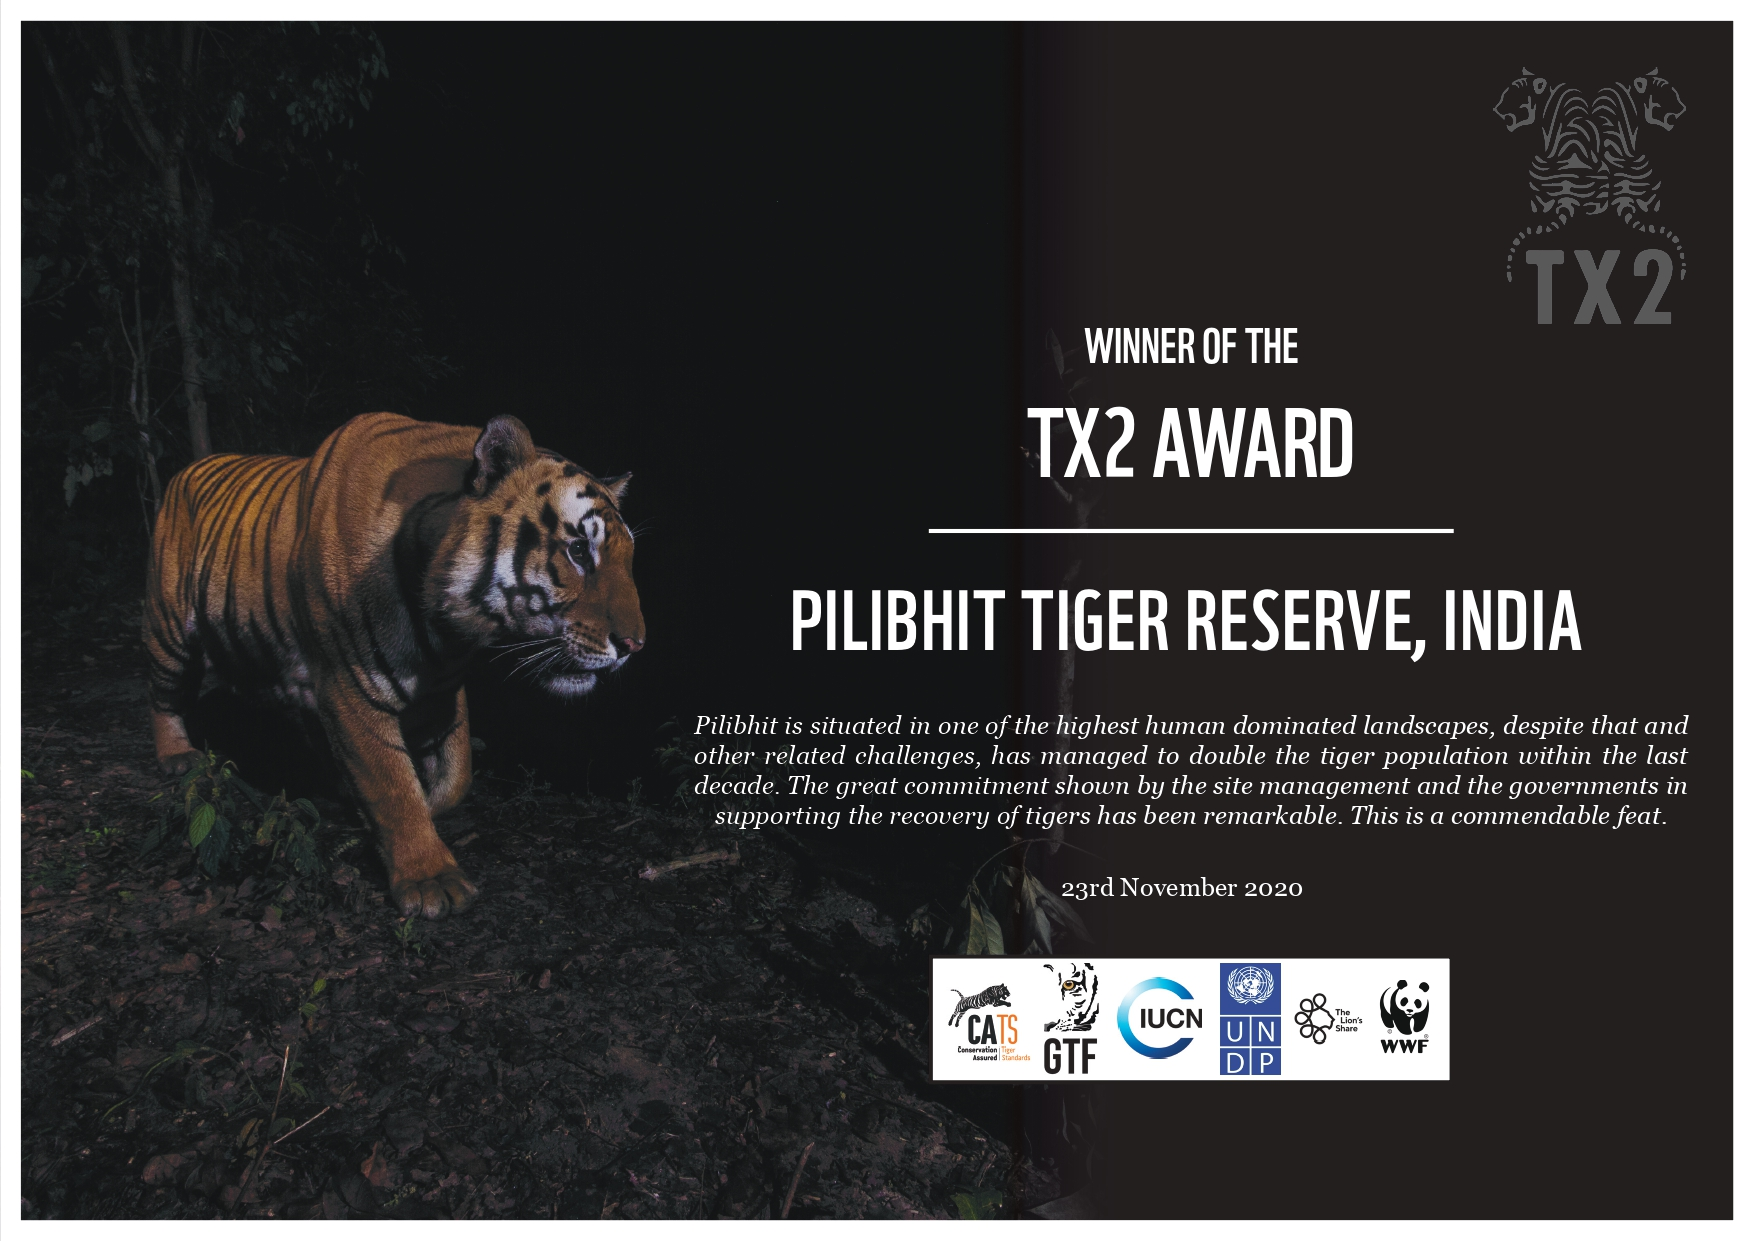 Pilibhit Tiger Reserve, UP forest department bag global award for doubling tiger population in a span of 4 years only